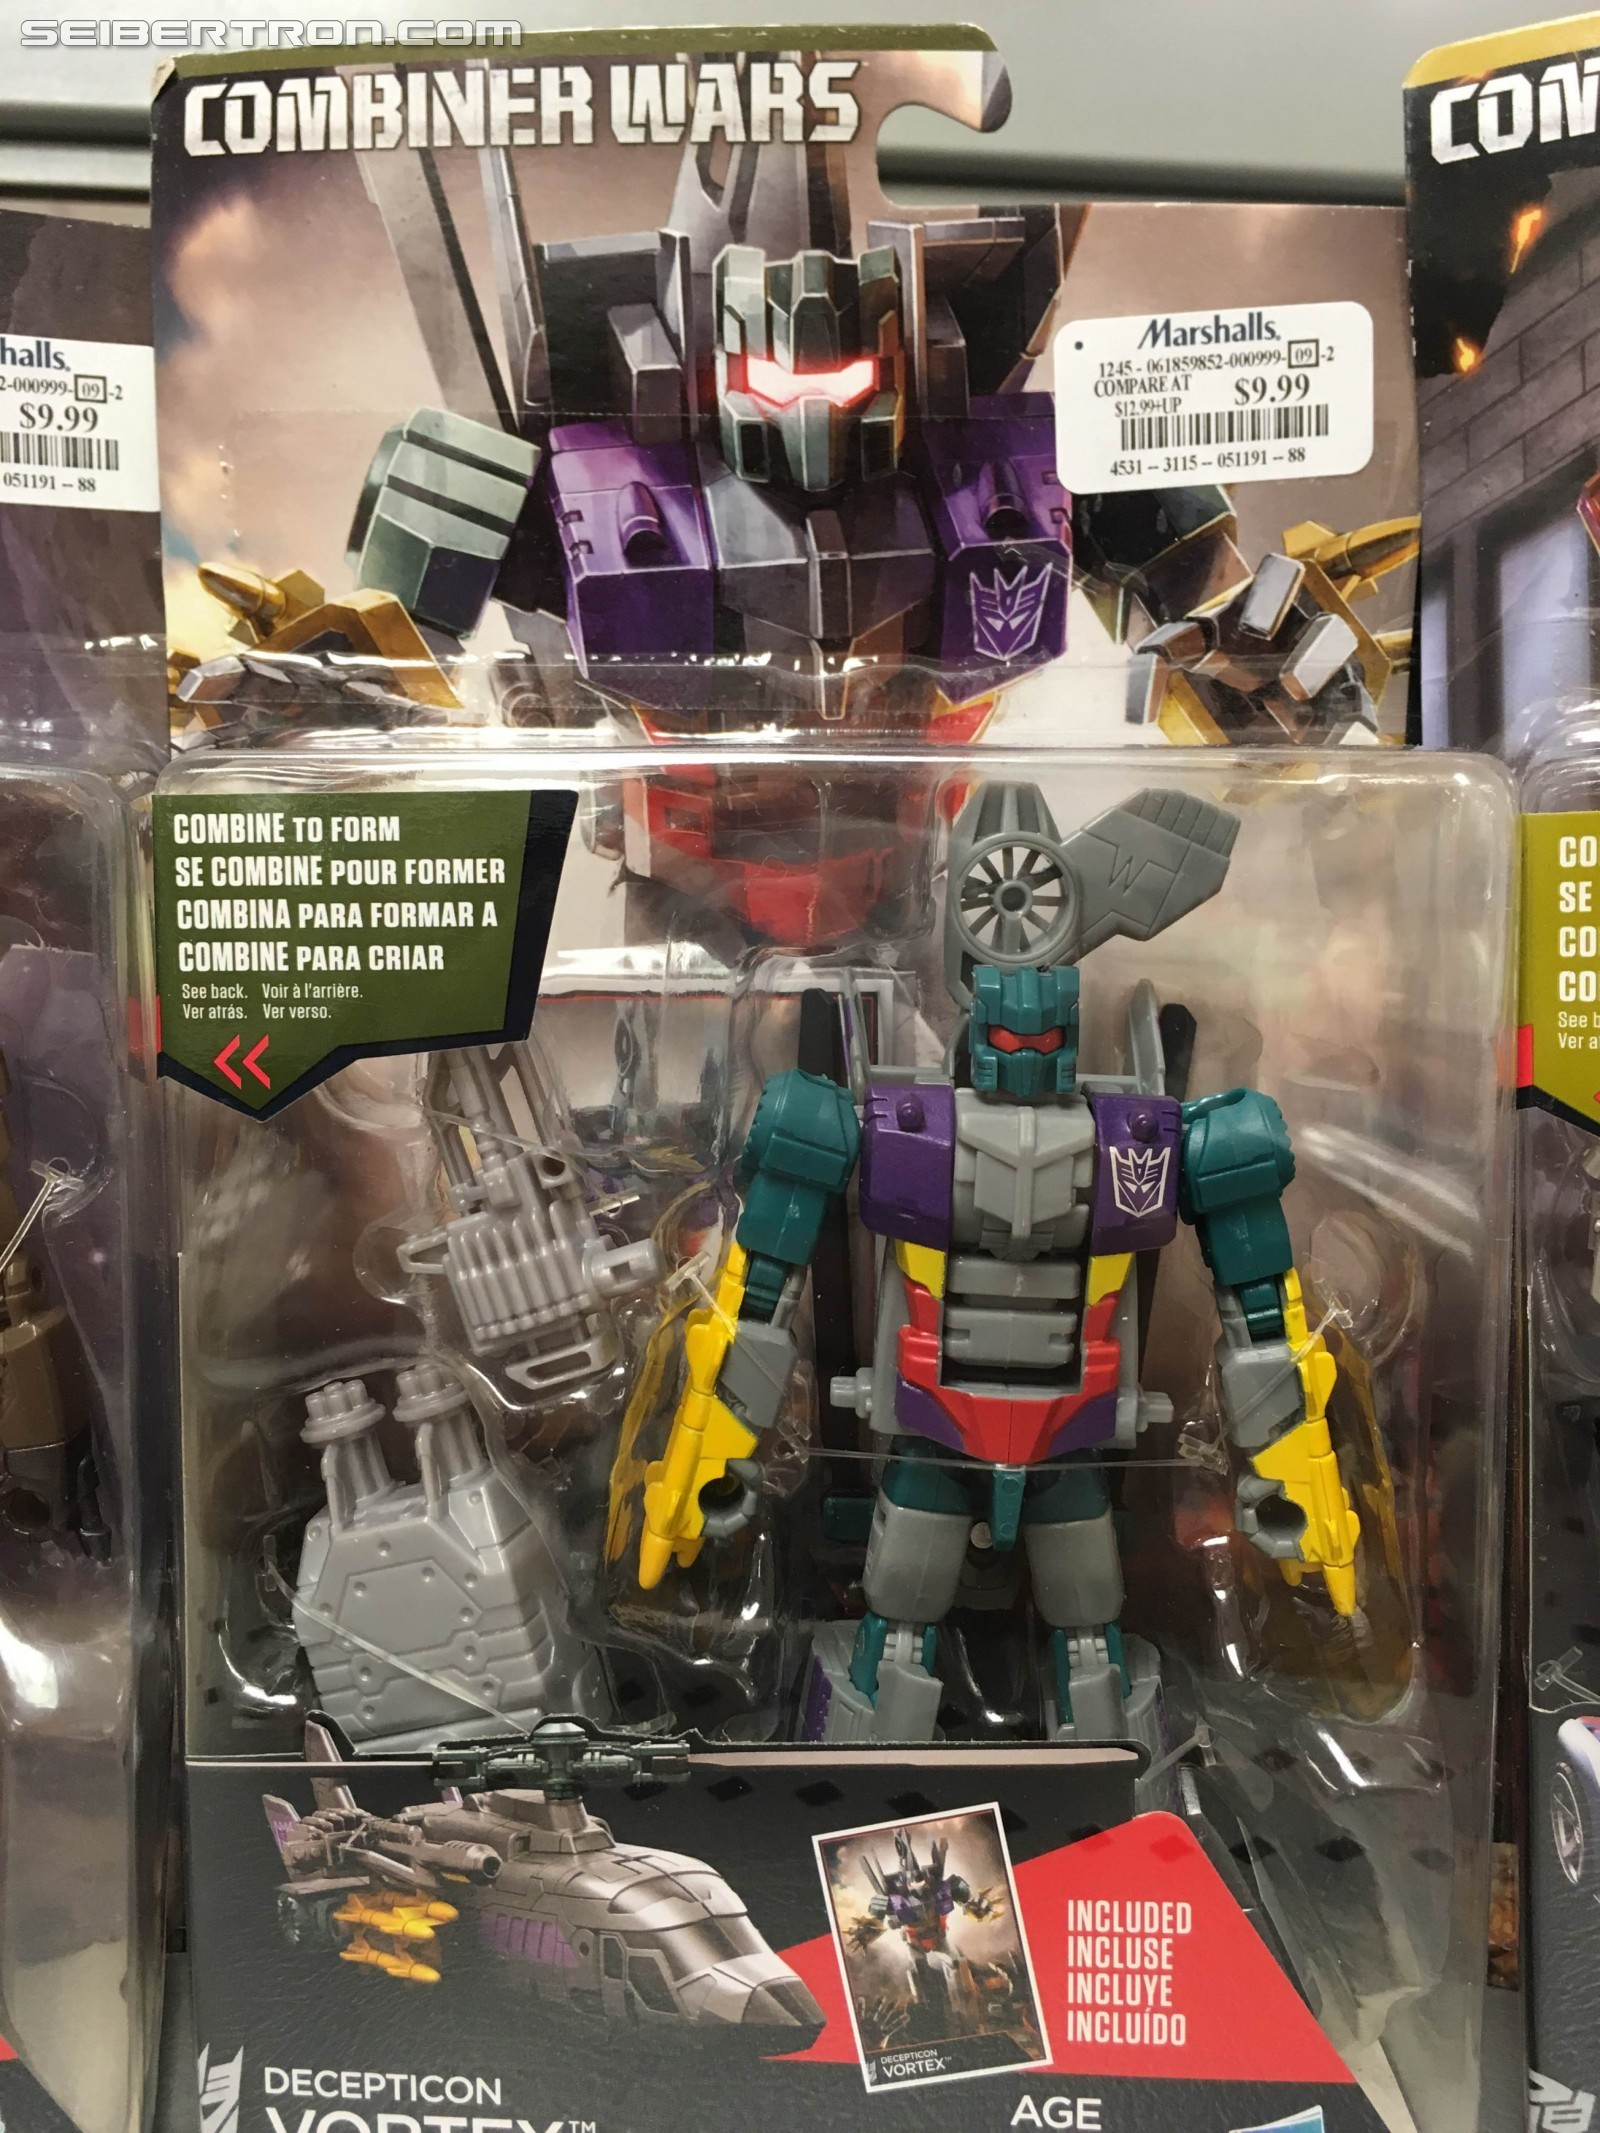 Transformers News: Multiple Transformers Combiner Wars Figures Appearing at Marshalls and Winners